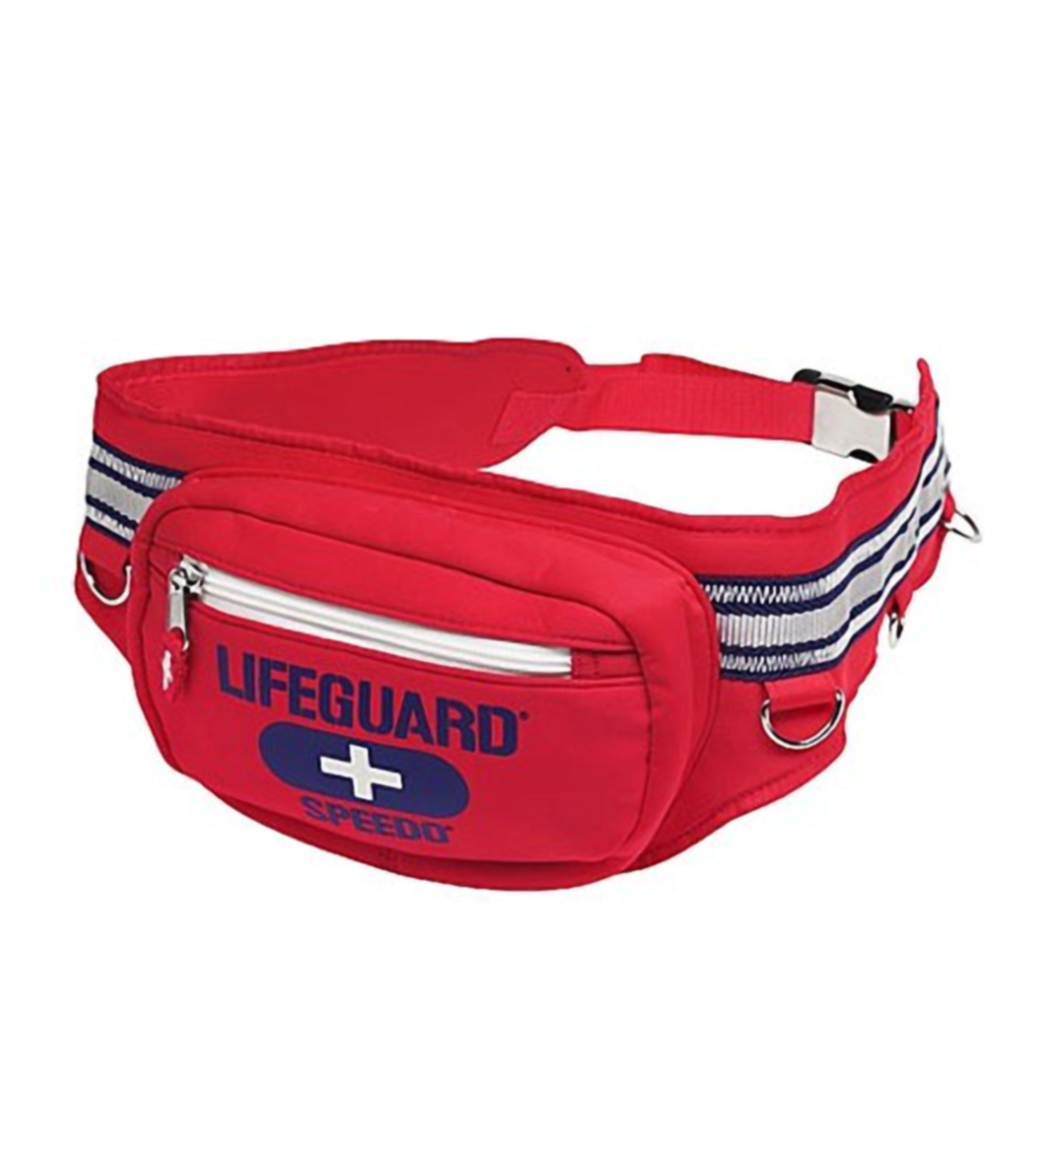 55a214433628 Speedo Lifeguard Neoprene Fanny Pack at SwimOutlet.com